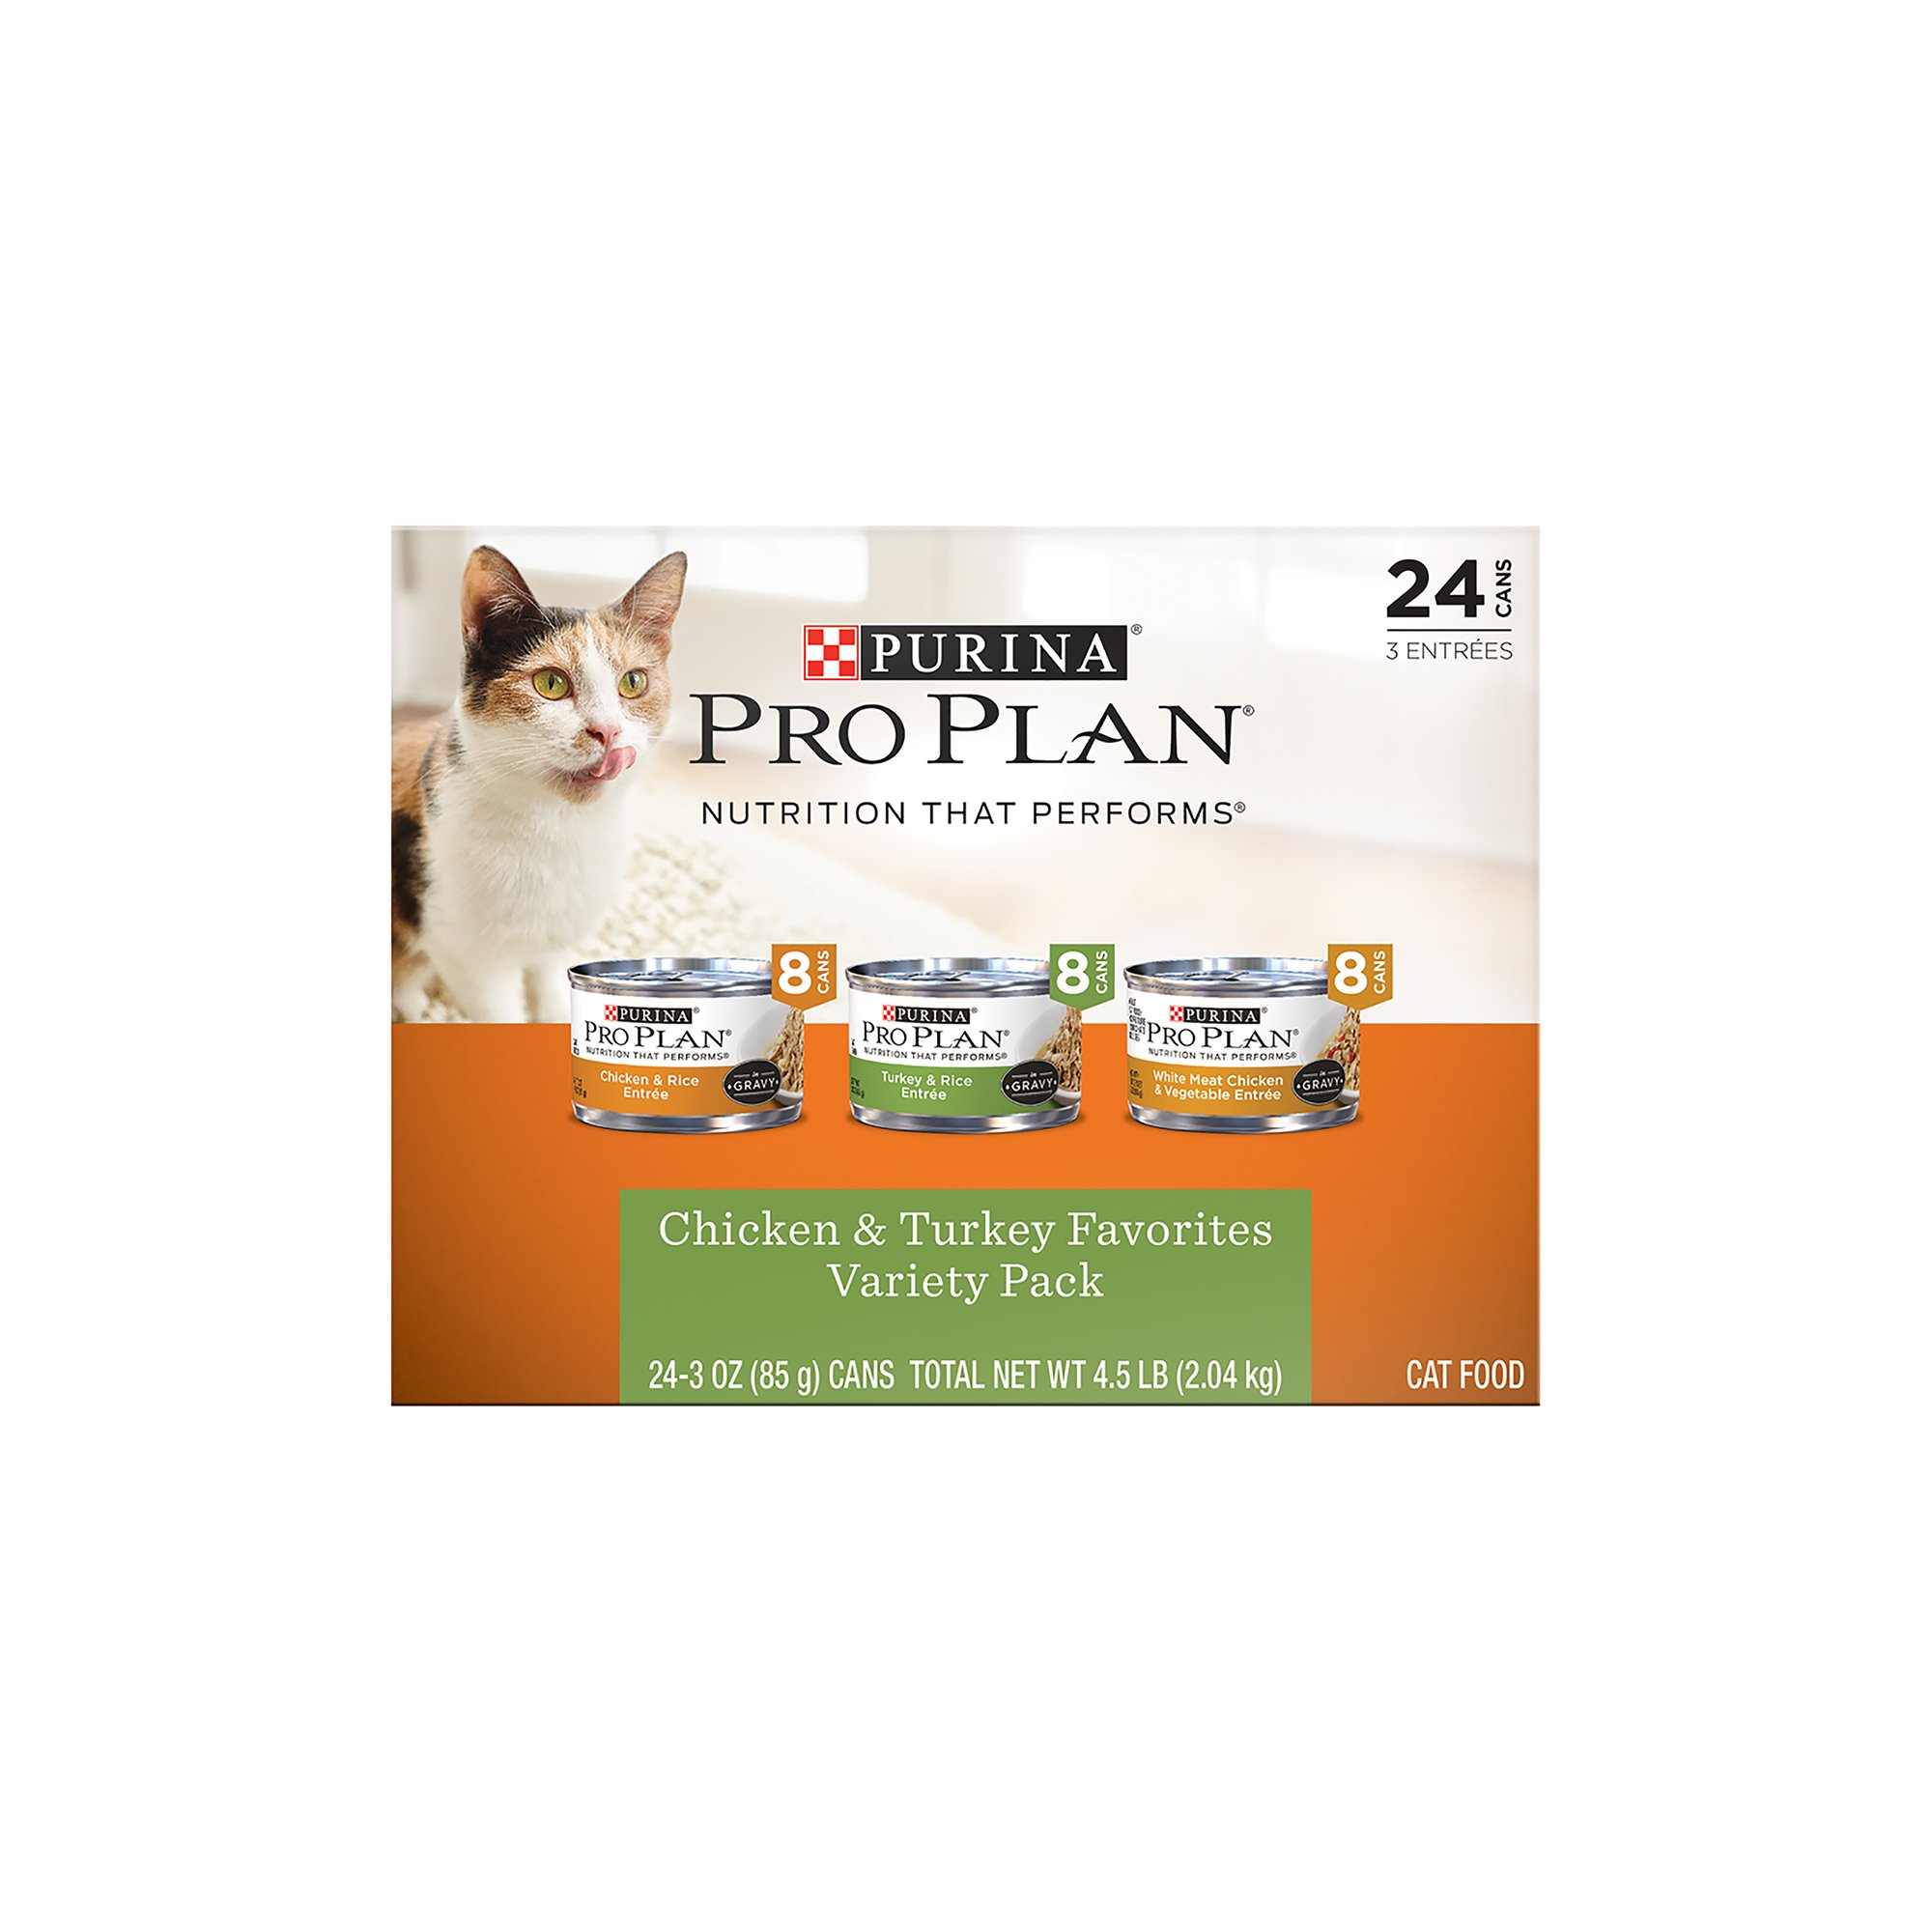 Purina Pro Plan pet food is trusted by professionals and crafted with pride to offer Nutrition That Performs for dogs and cats. Dog Food, Cat Food, and Treats.